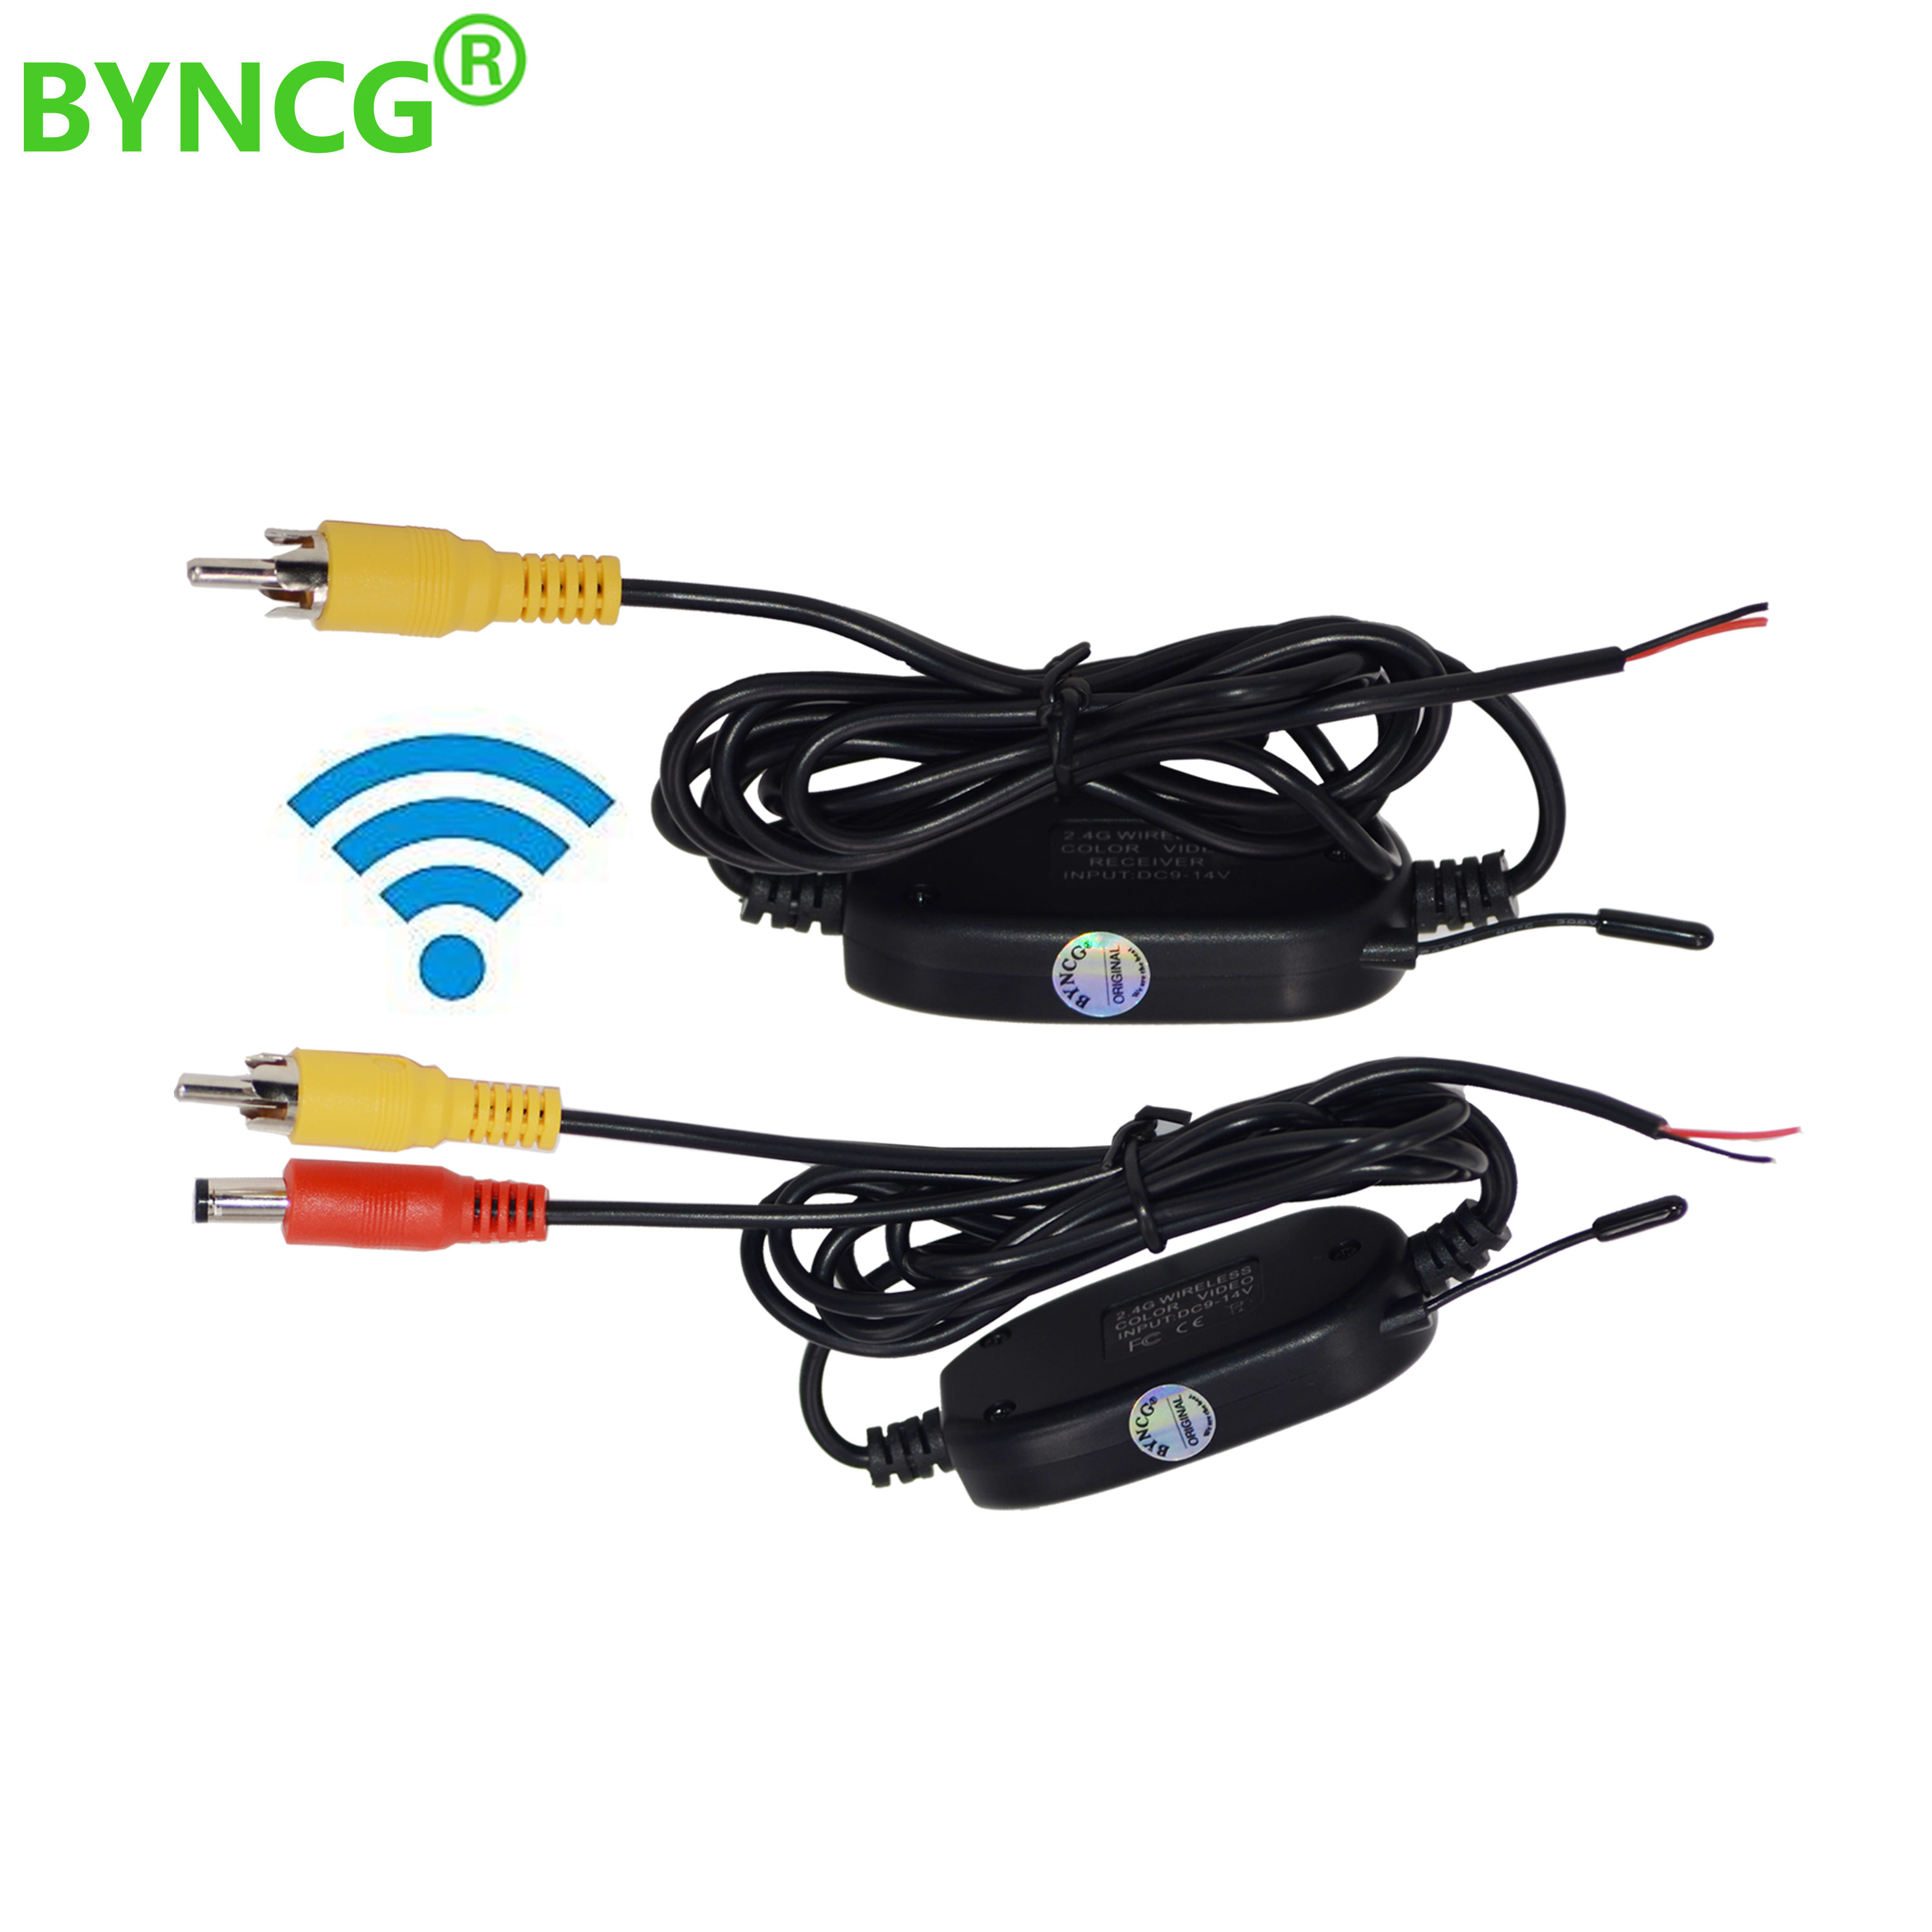 BYNCG 2 4 Ghz Wireless Rear View font b Camera b font RCA Video Transmitter Receiver